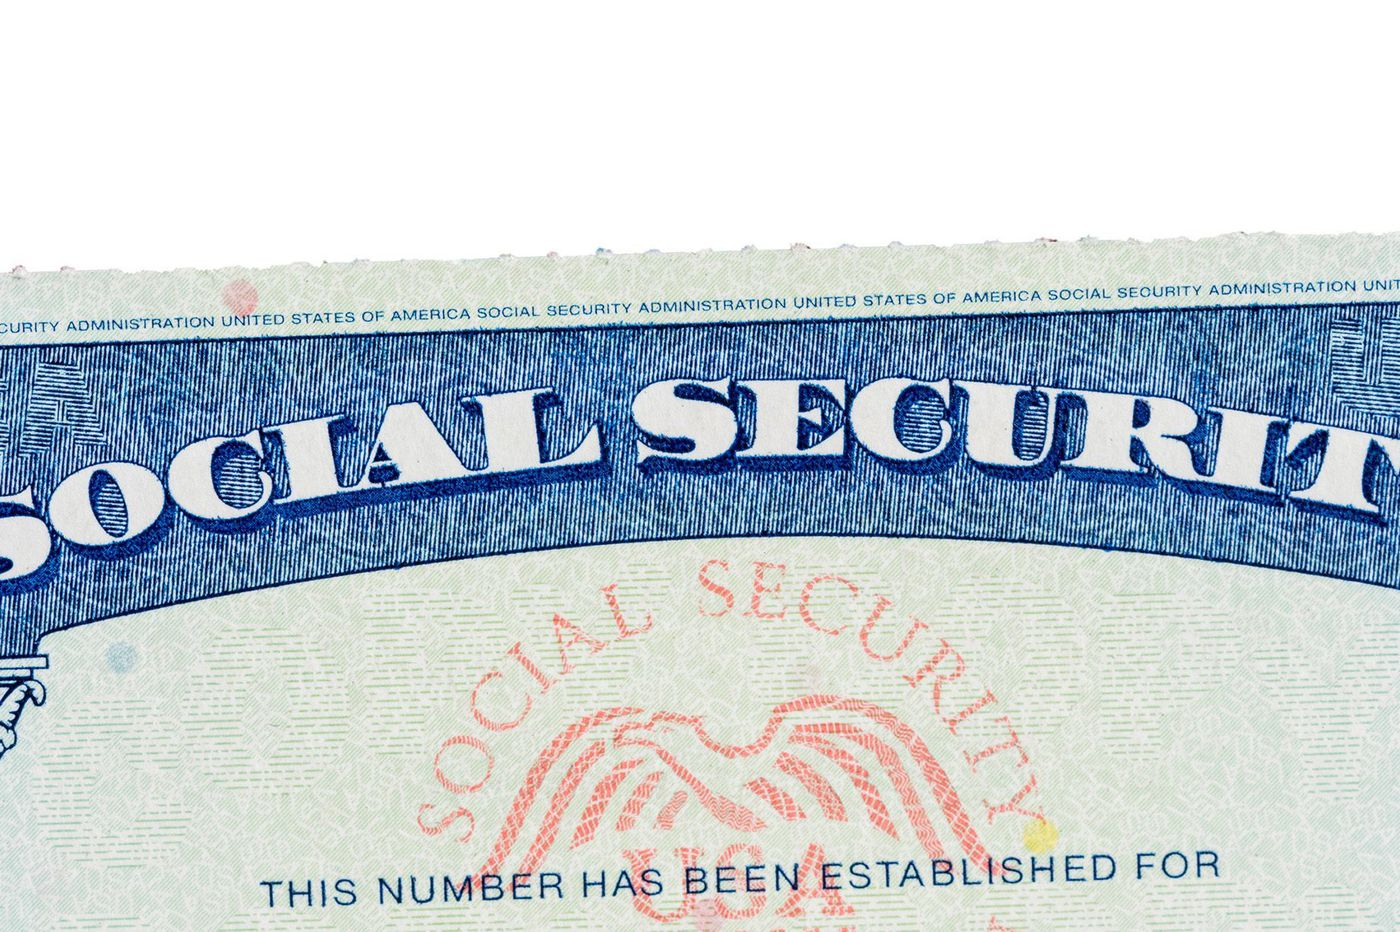 Planning for Social Security retirement benefits? Get all your questions answered at this free seminar